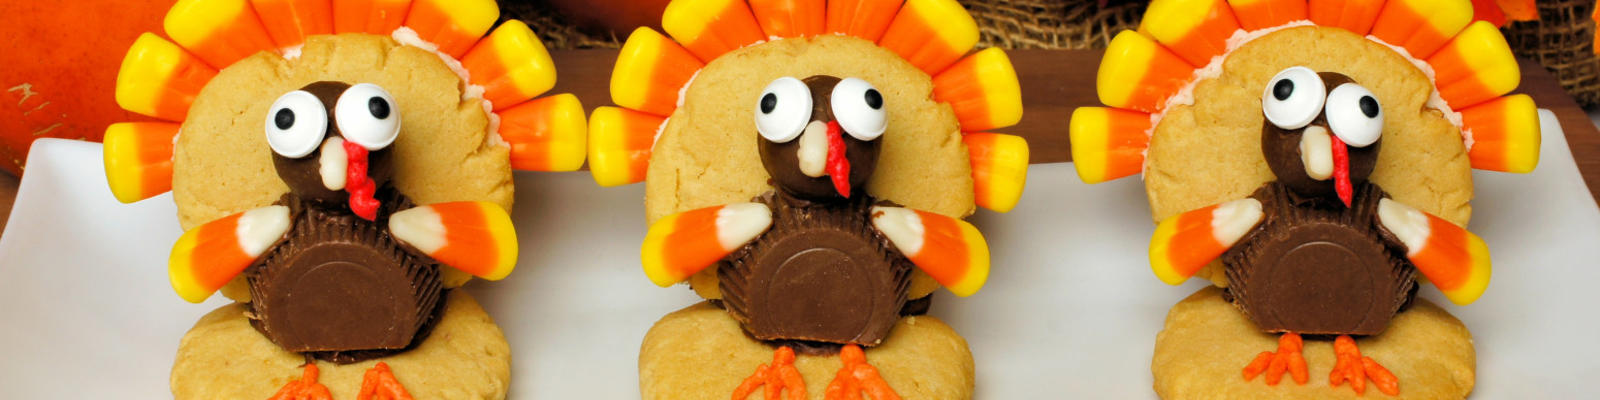 A row of candy and cookie turkeys